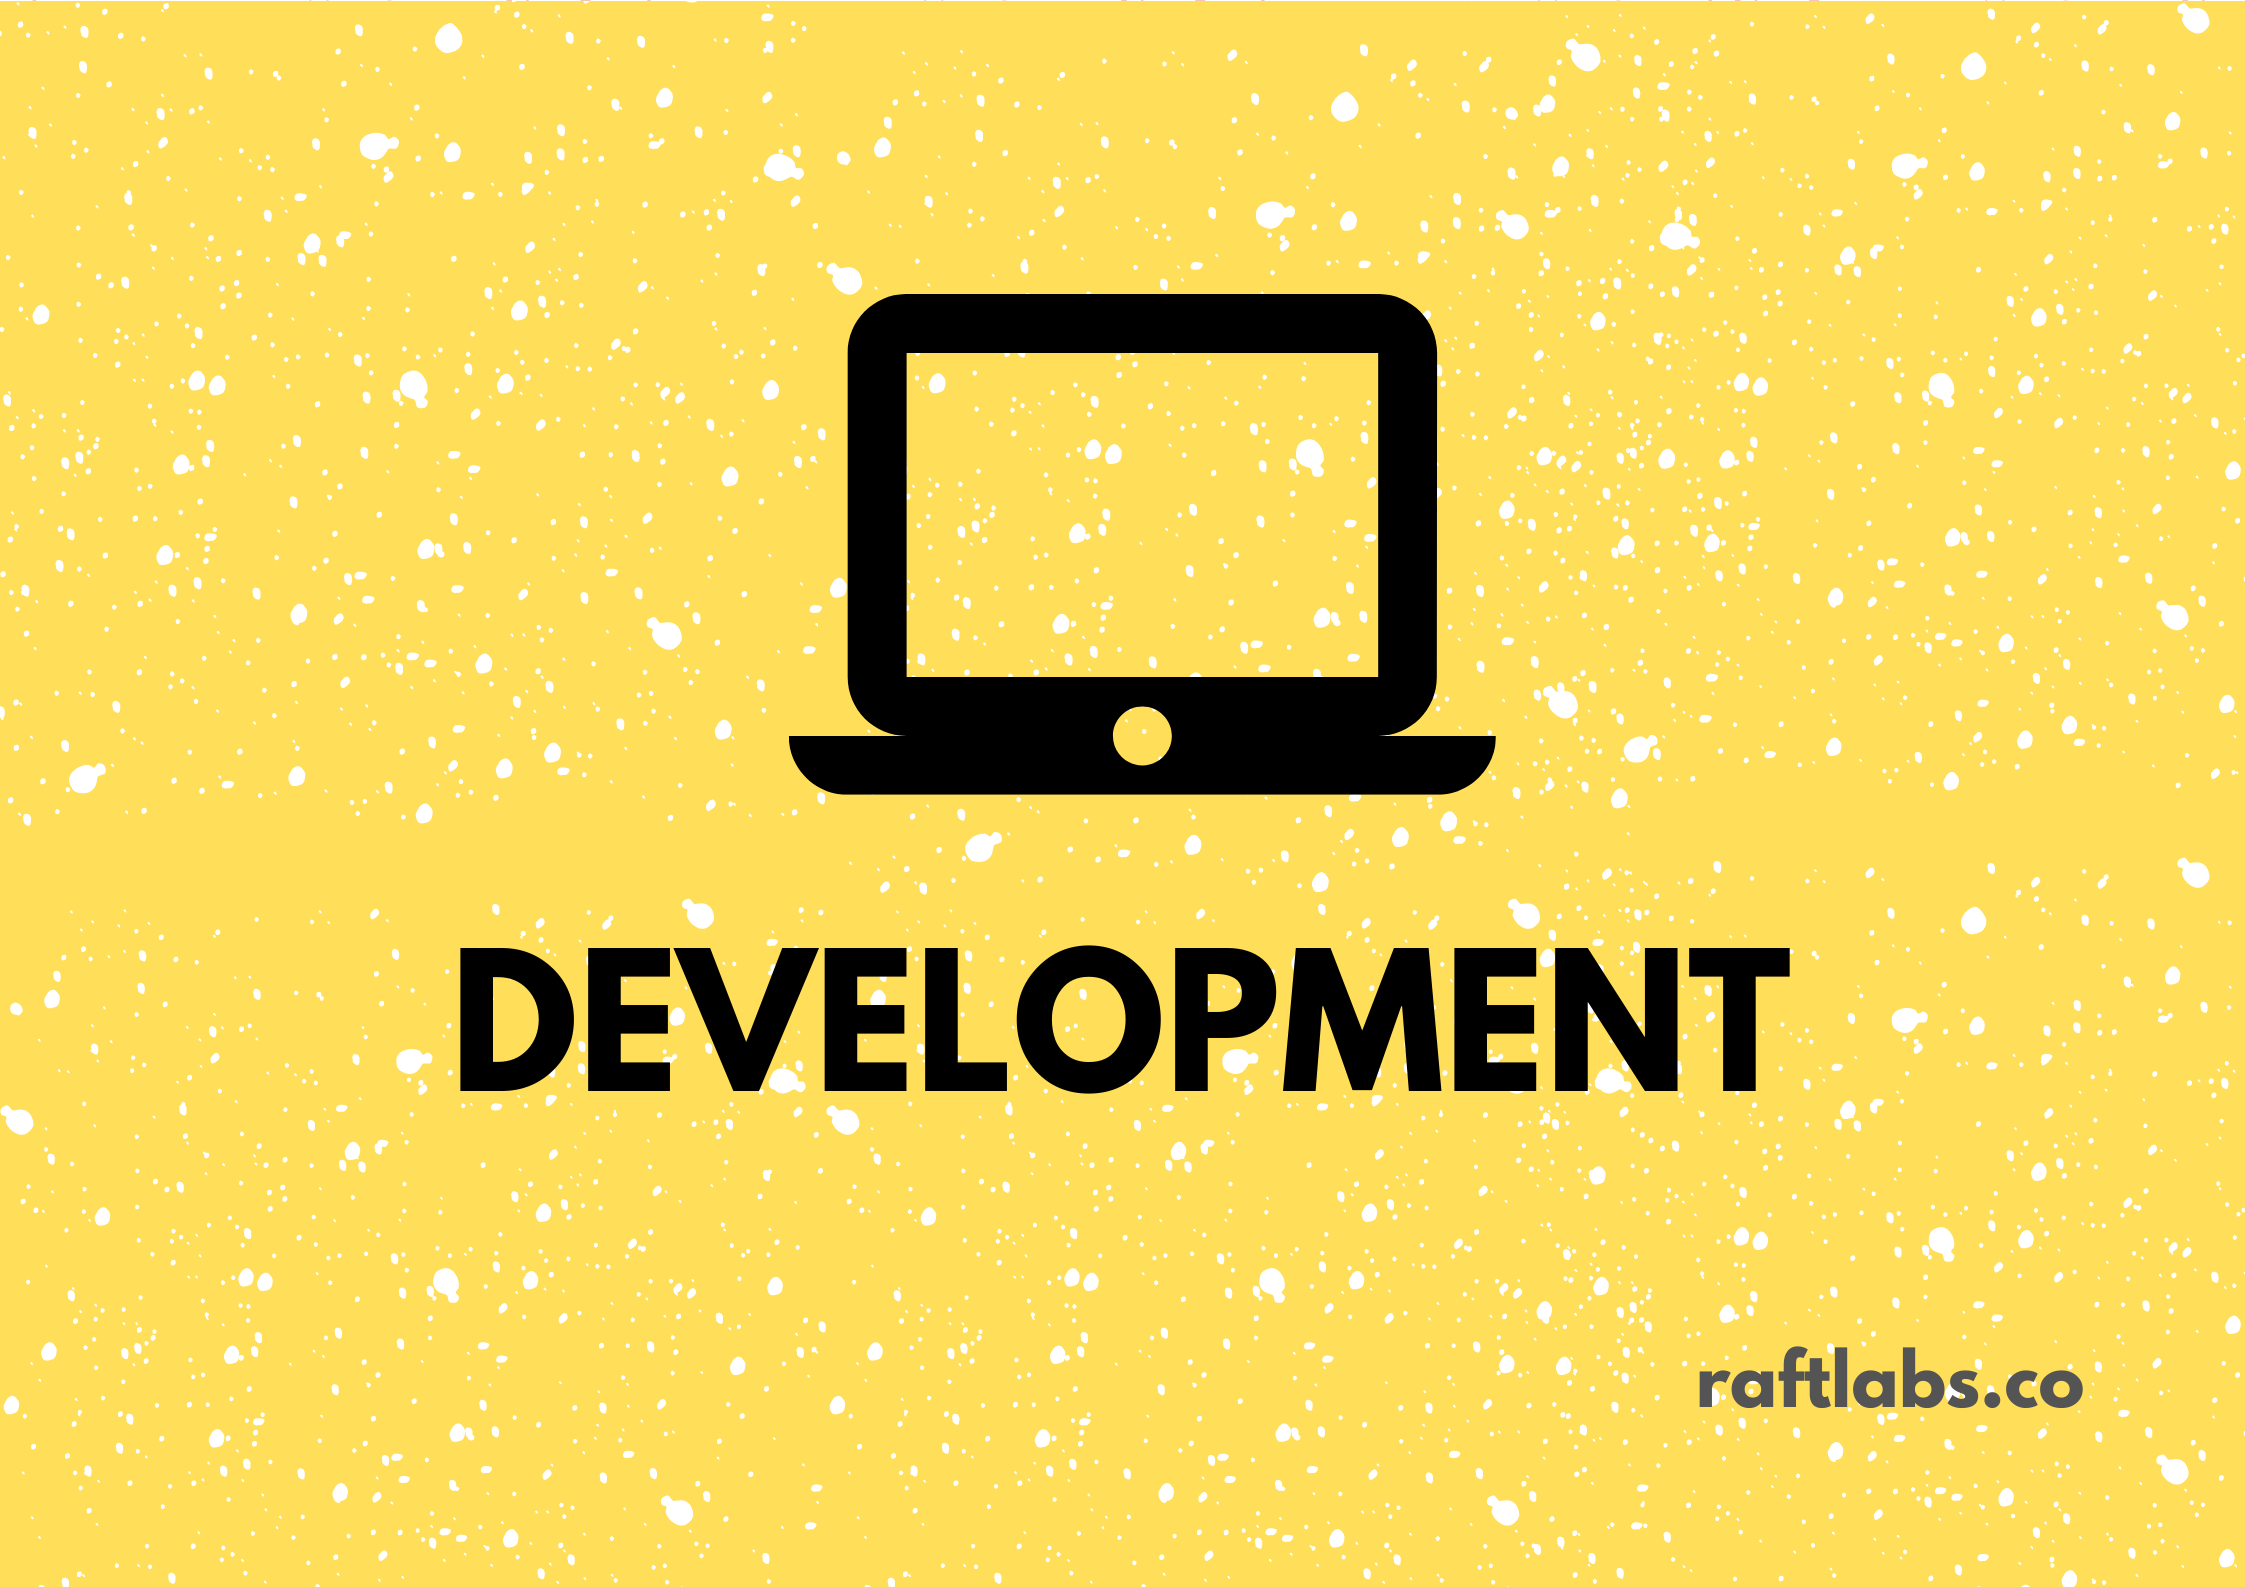 Top Software Development Resources for frontend, backend, cloud, fullstack or mobile apps.